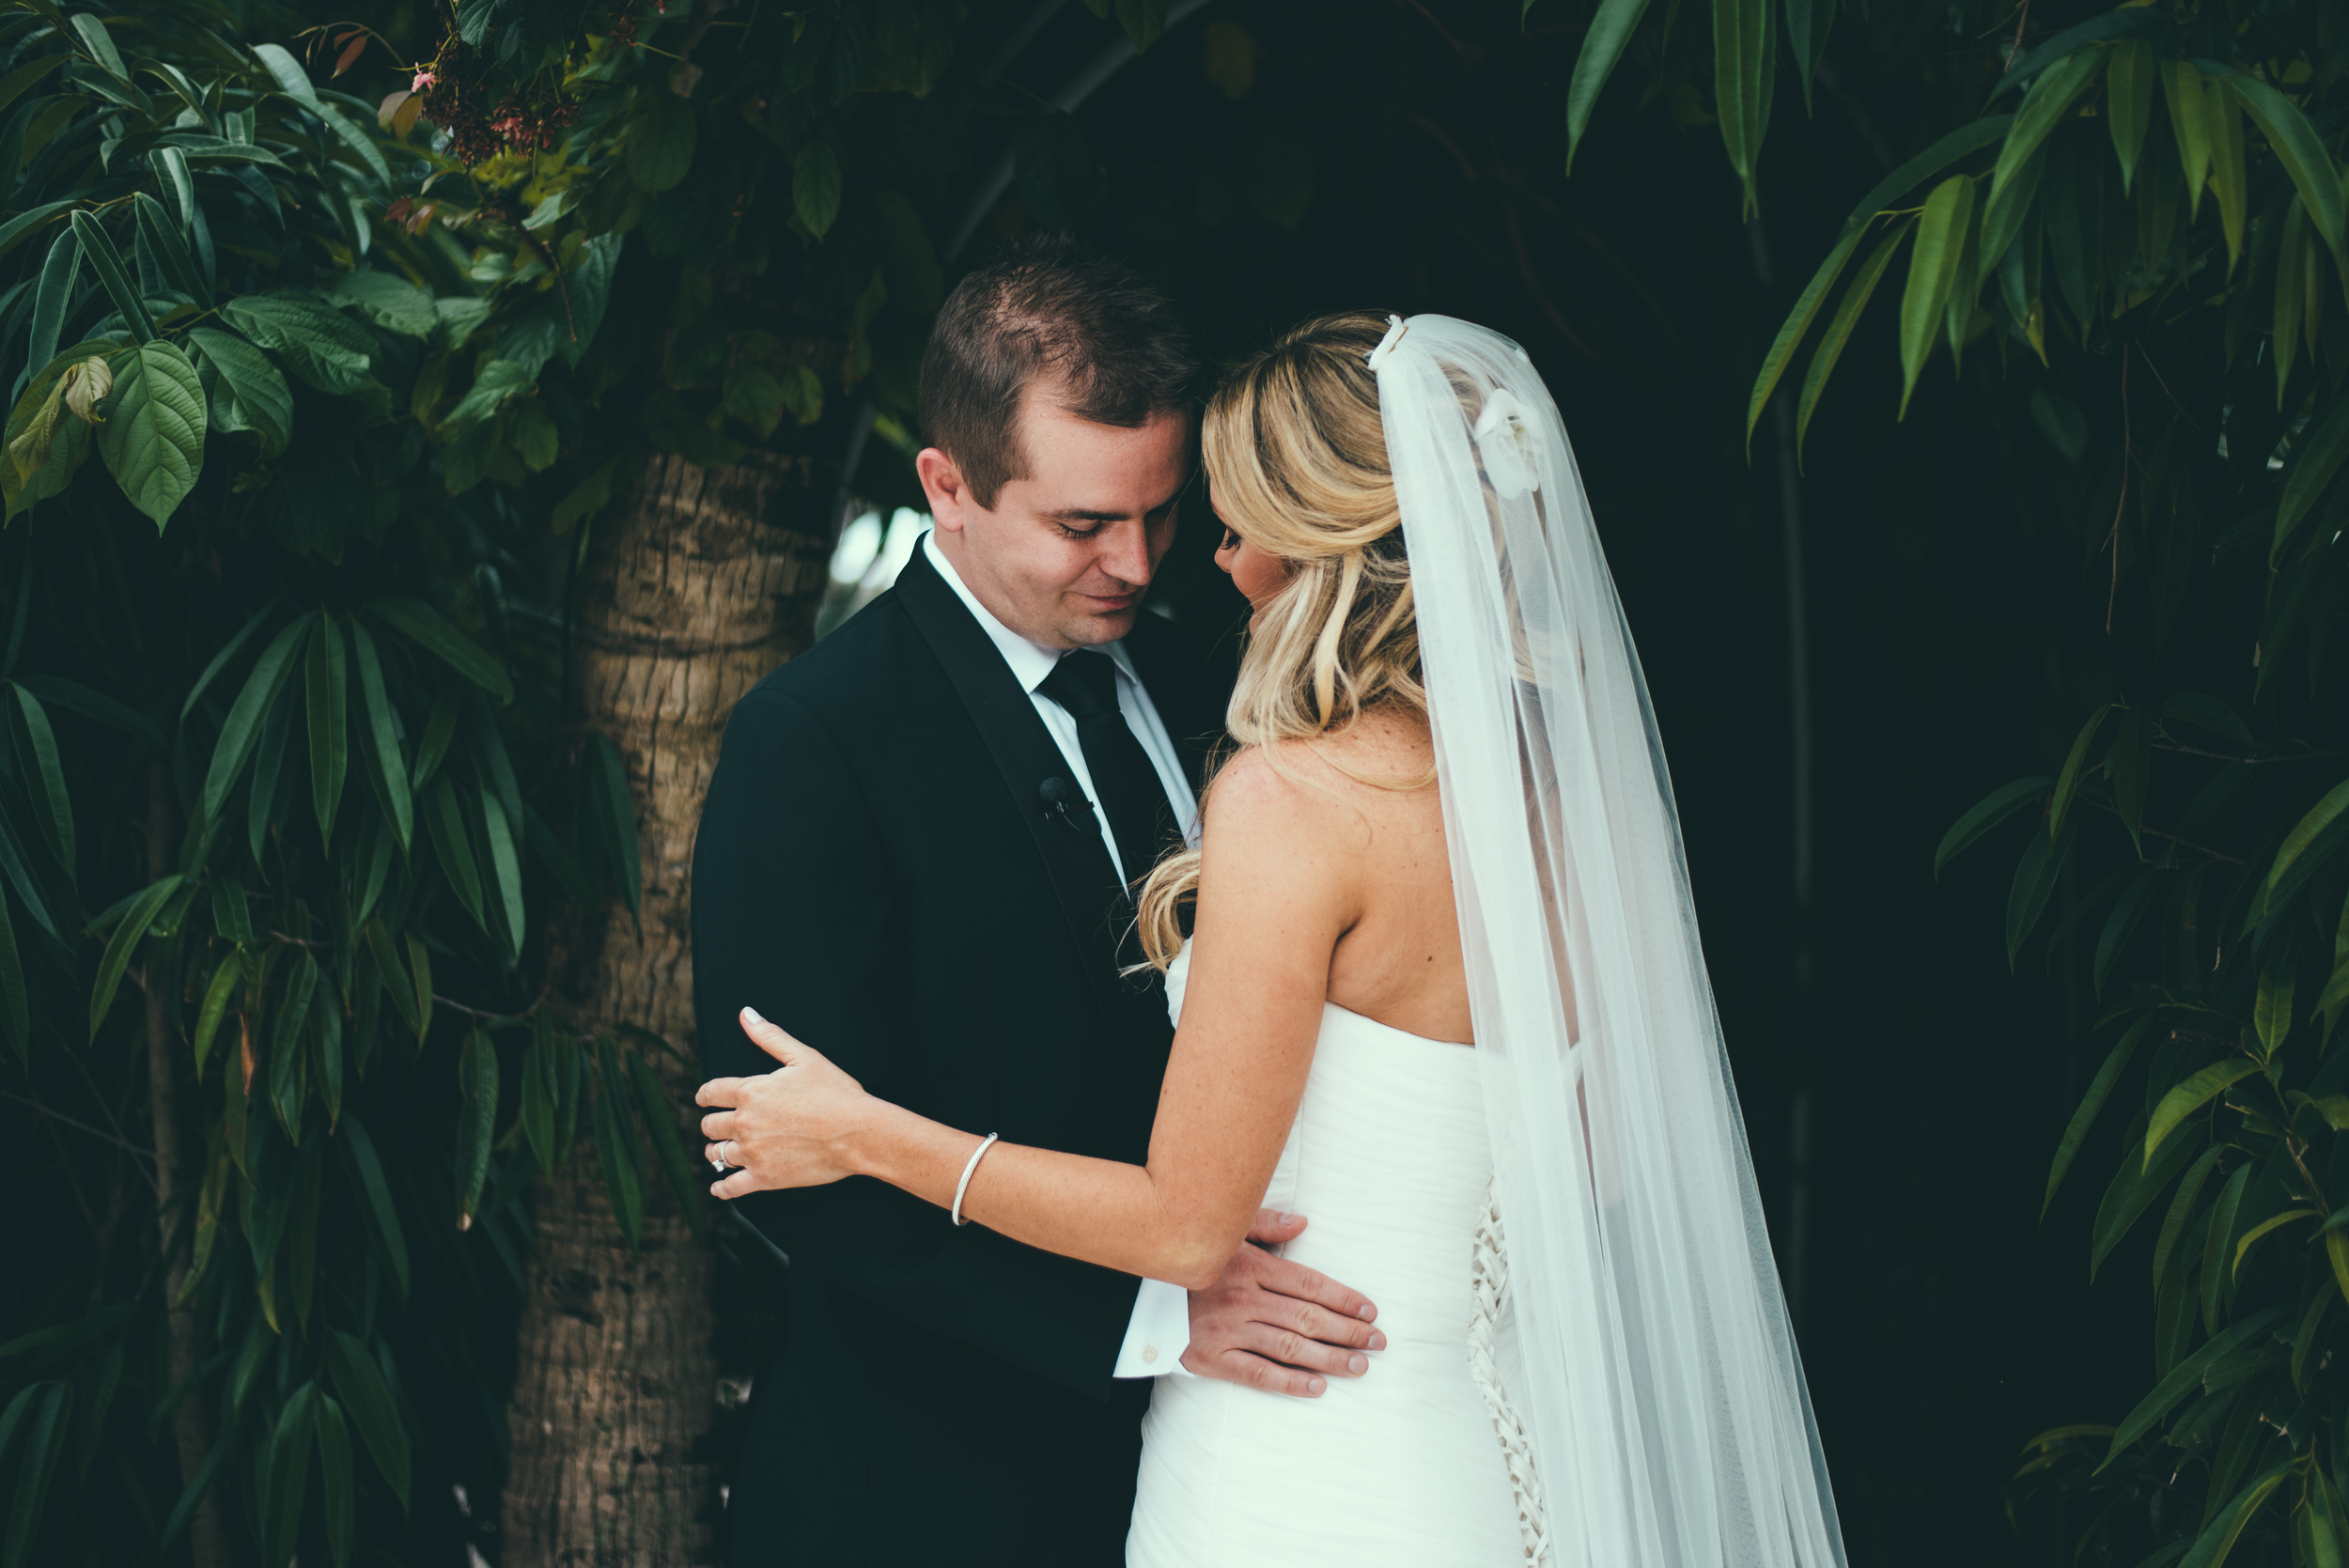 The Palms Hotel & Spa Wedding Miami Florida Photographer First Look Groom Bride Intimate moment